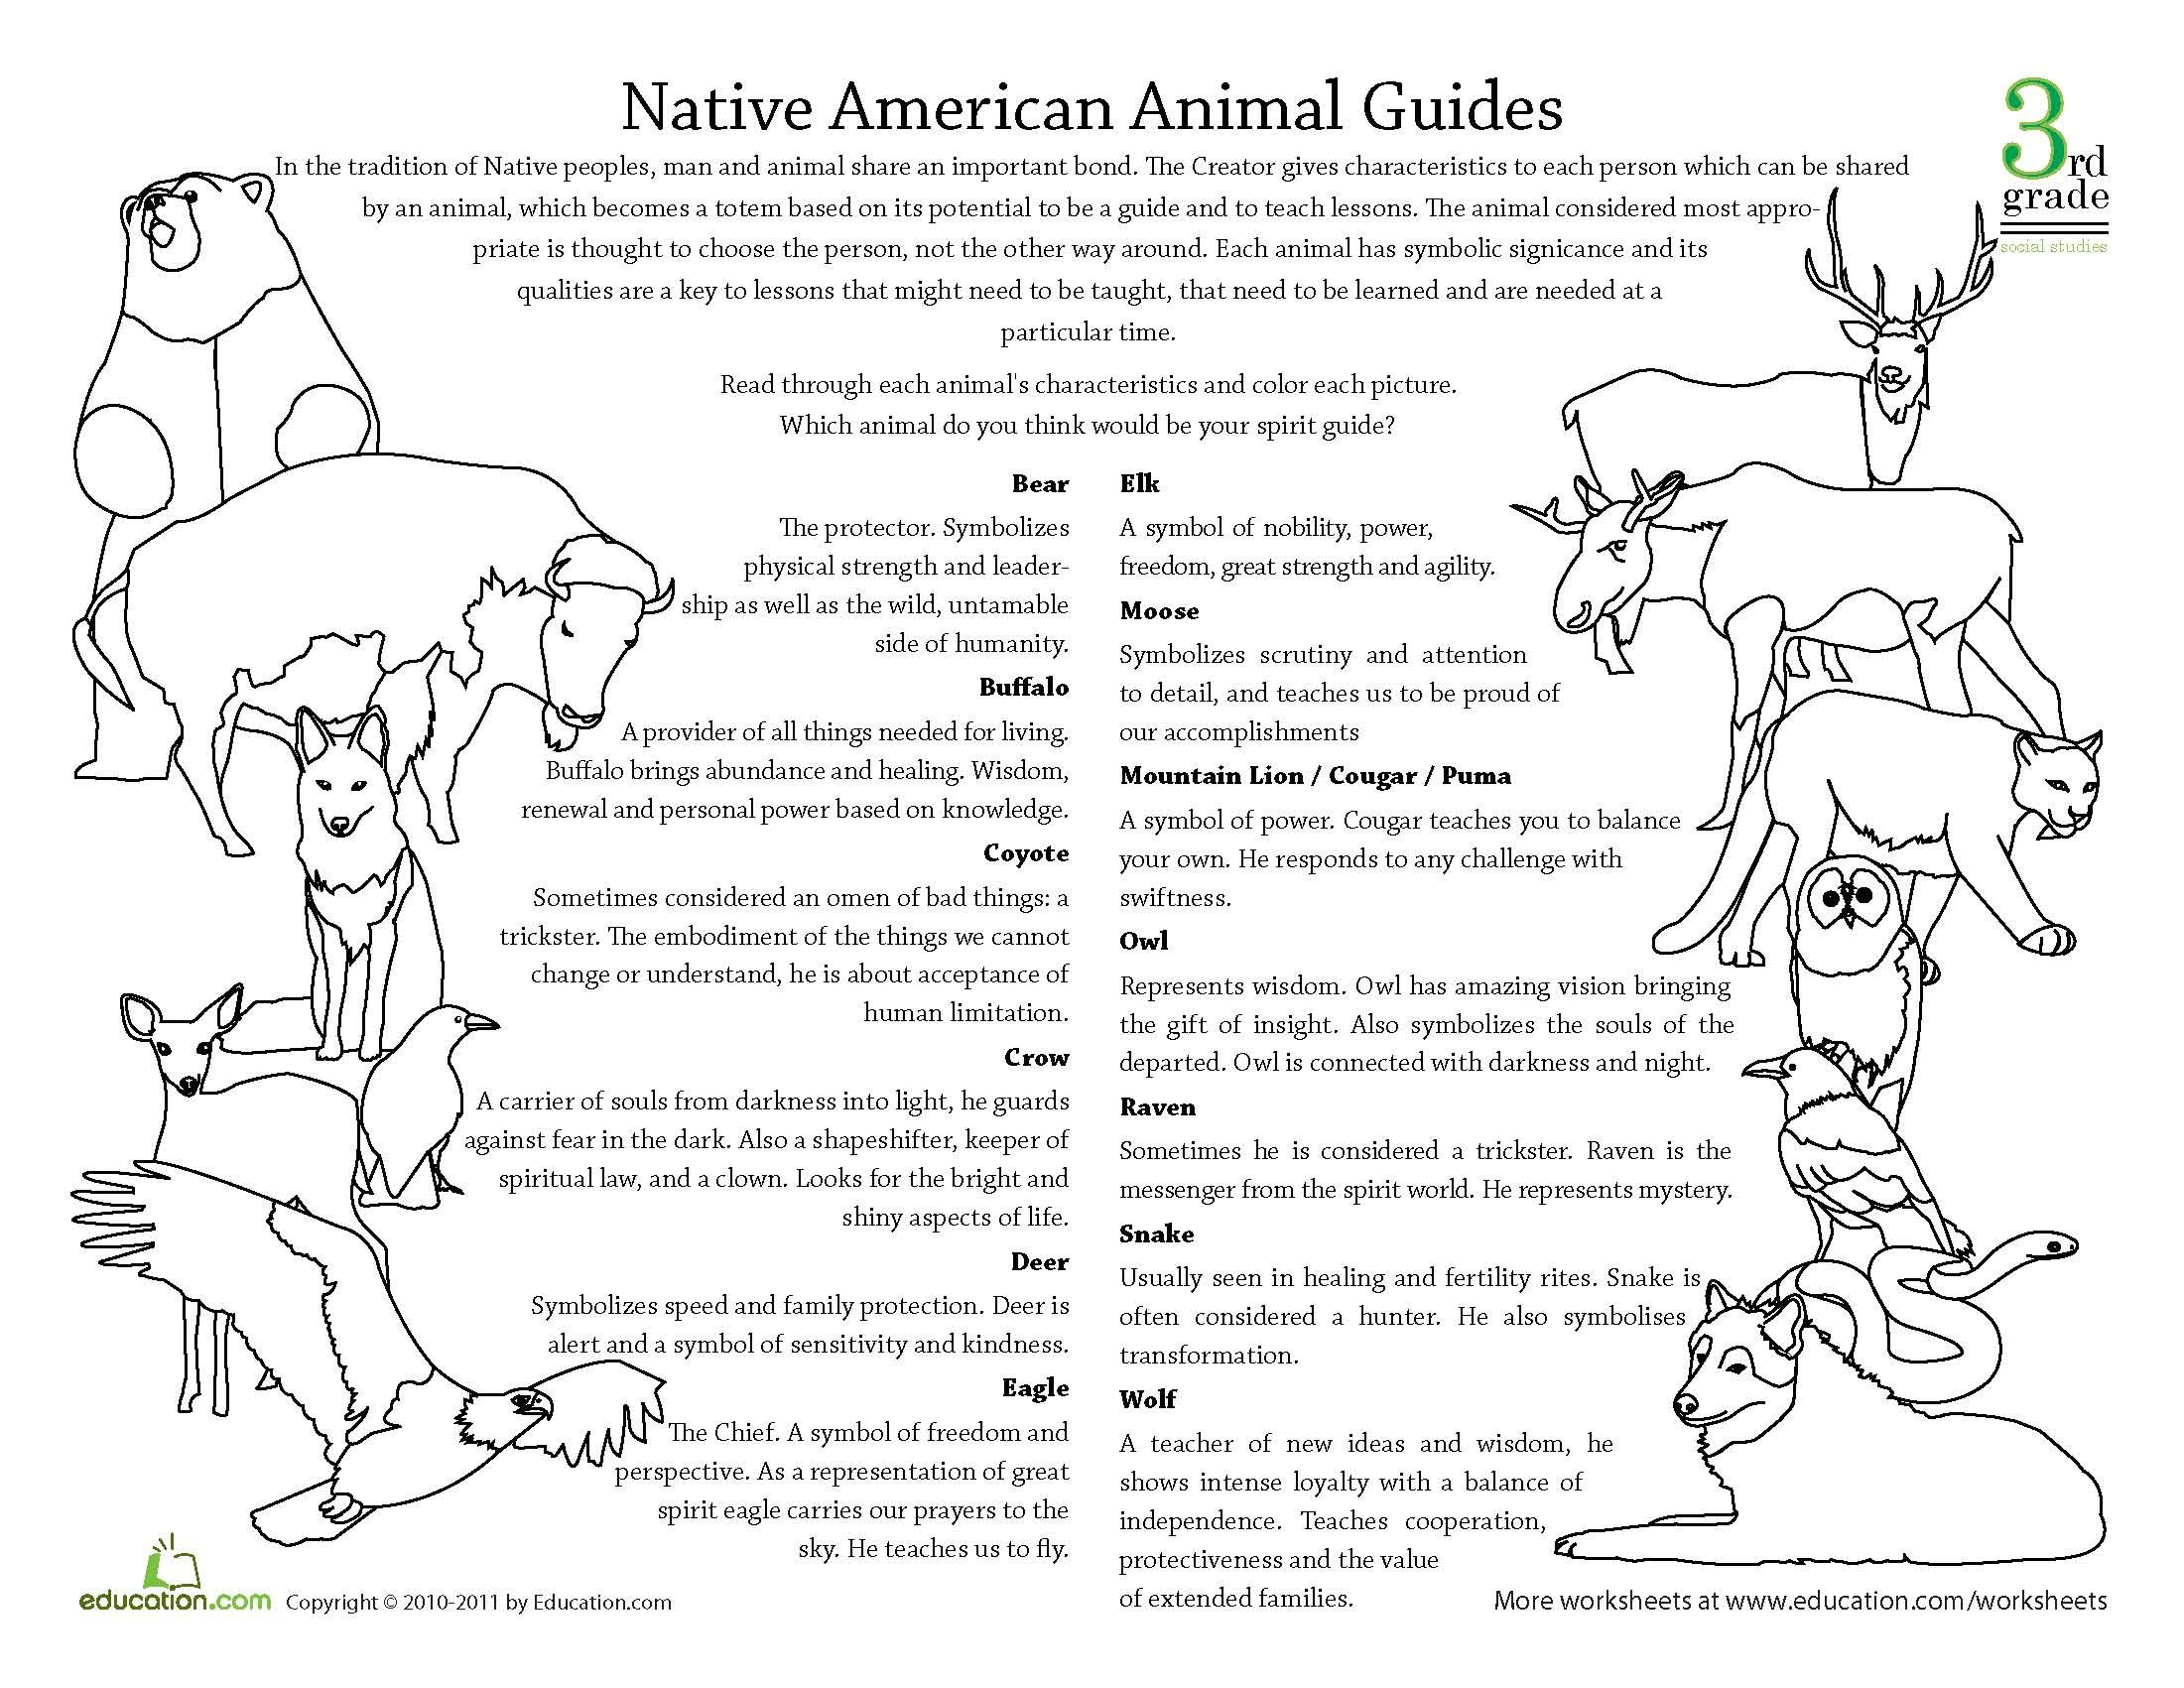 hight resolution of http://api.ning.com/files/7U-JG7rftqSKt-SB74-Nd2vcbytwDfleeO0exFJo1gYdvK0GUwm5e-eLoRXMo…    Native american animals